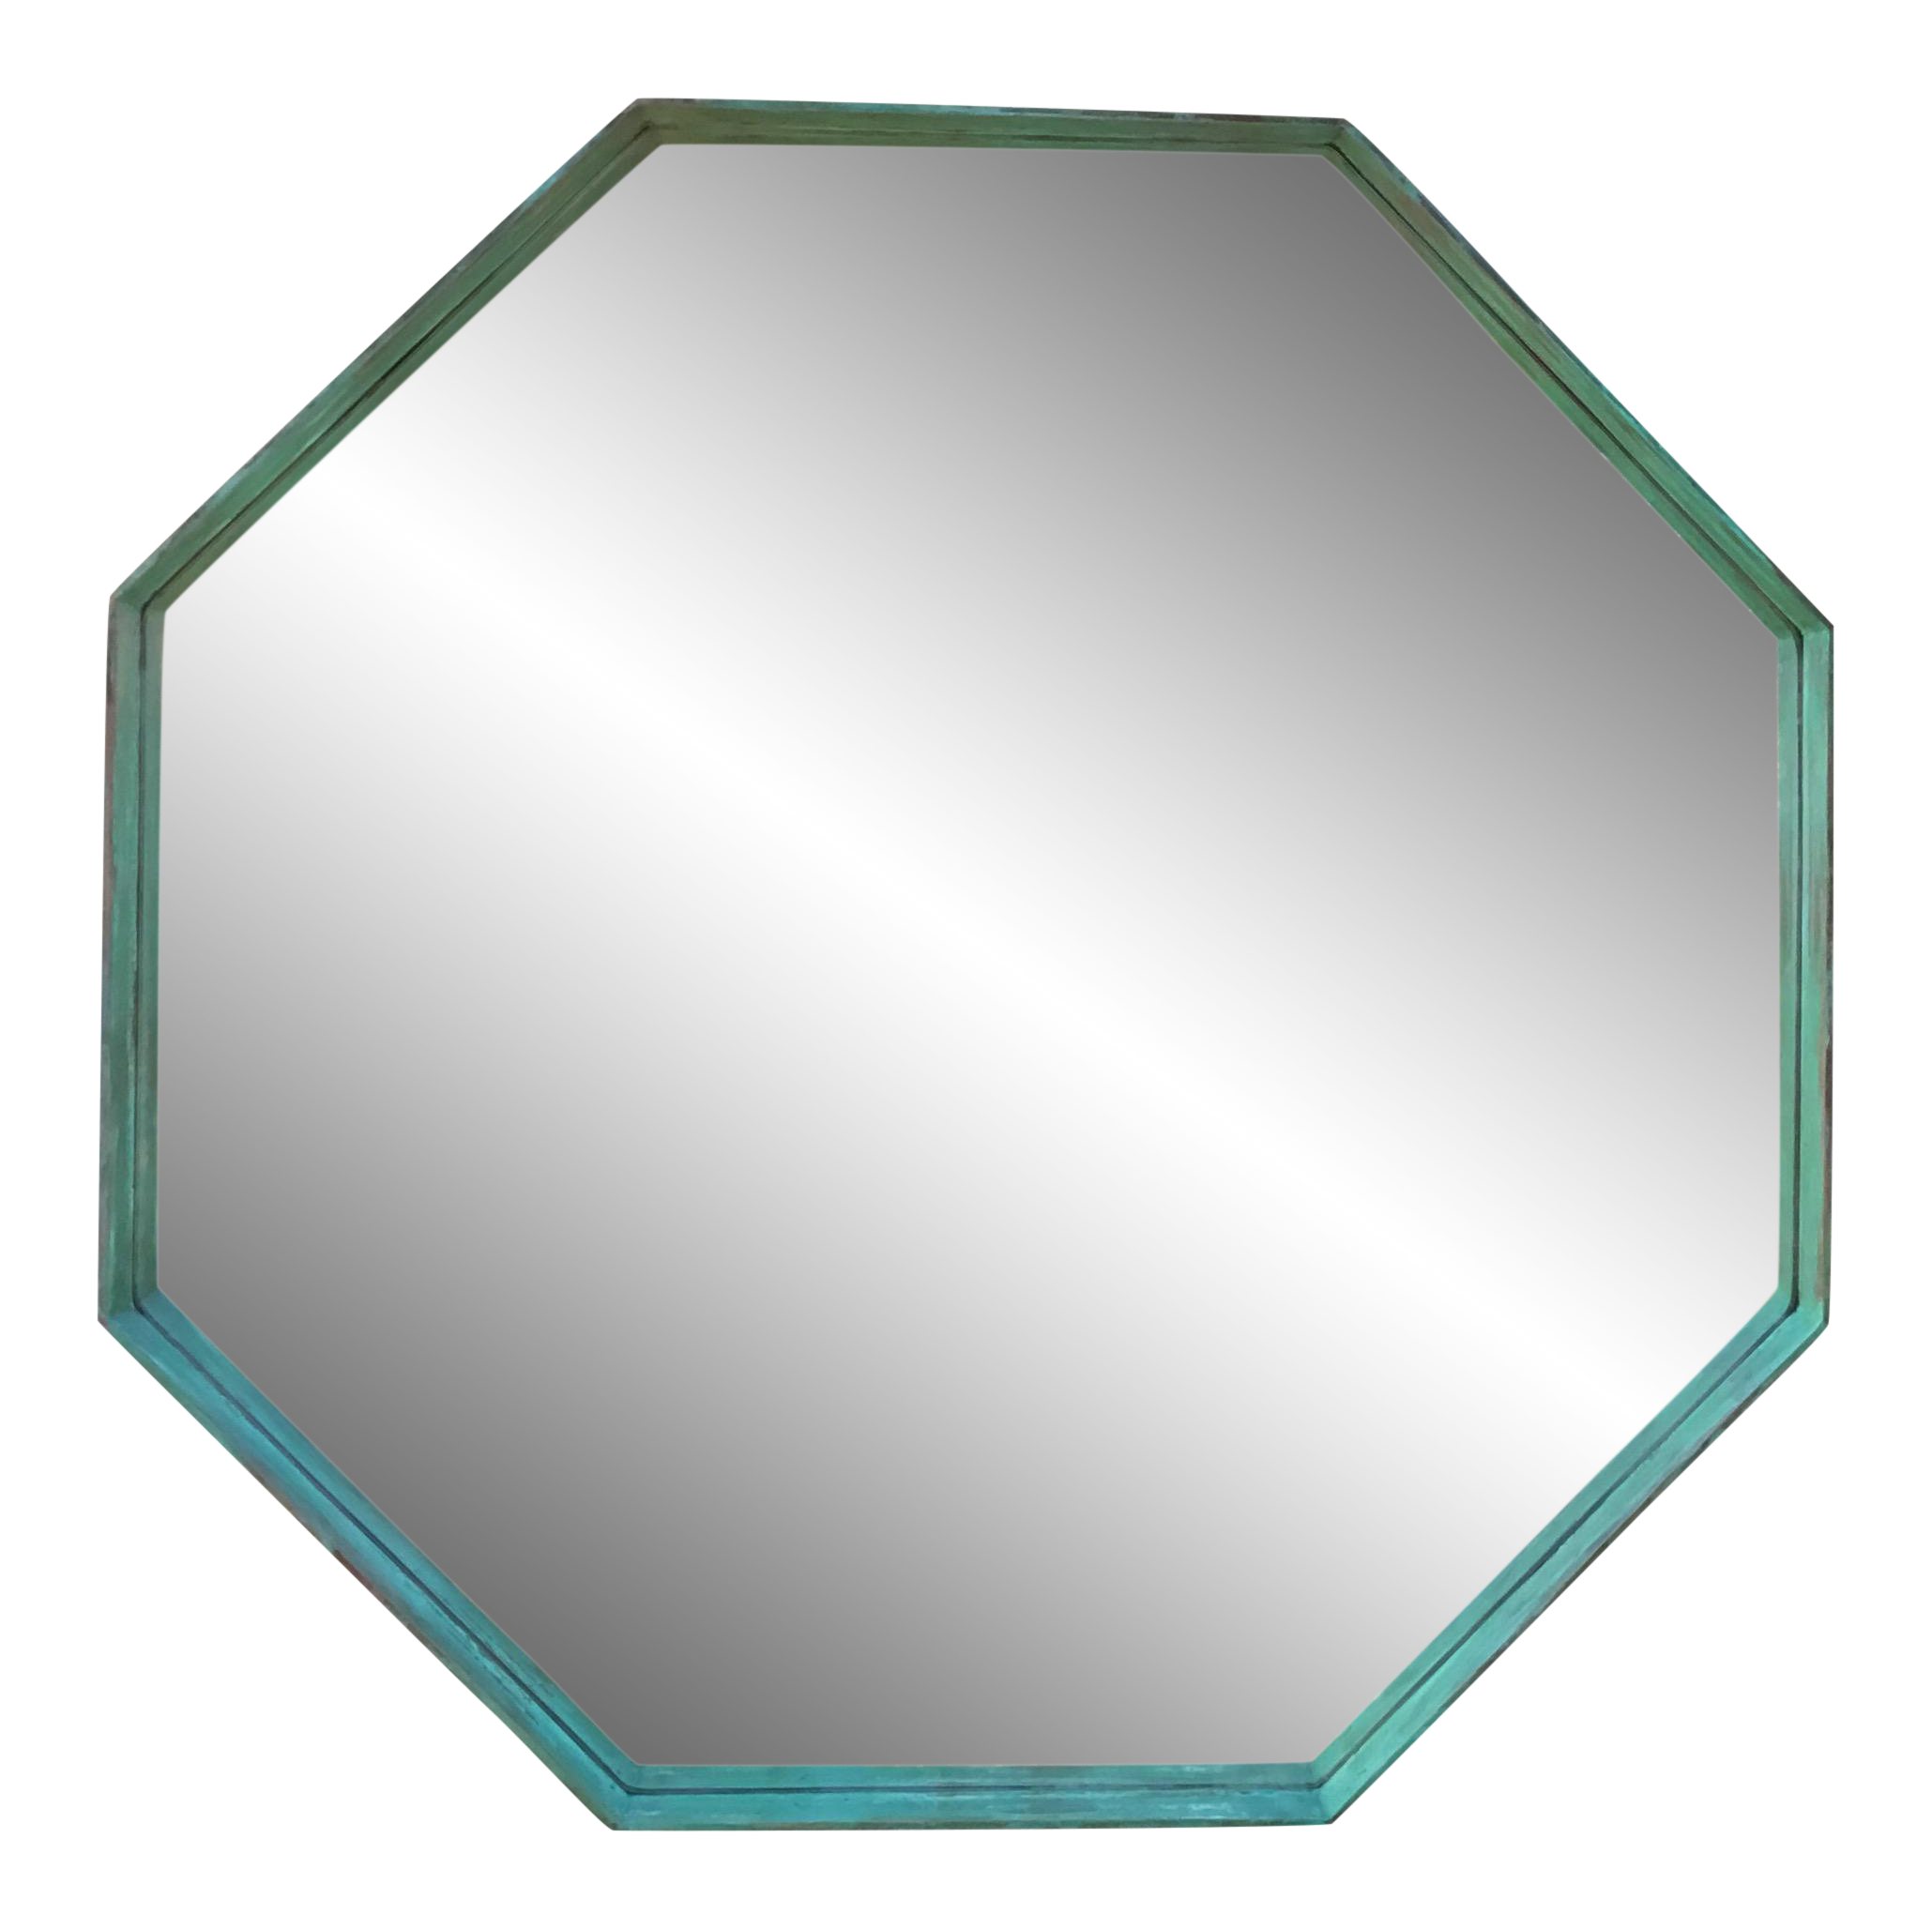 House of mirrors clipart royalty free library Architectural Bronze Hexagon Mirror | Chairish royalty free library